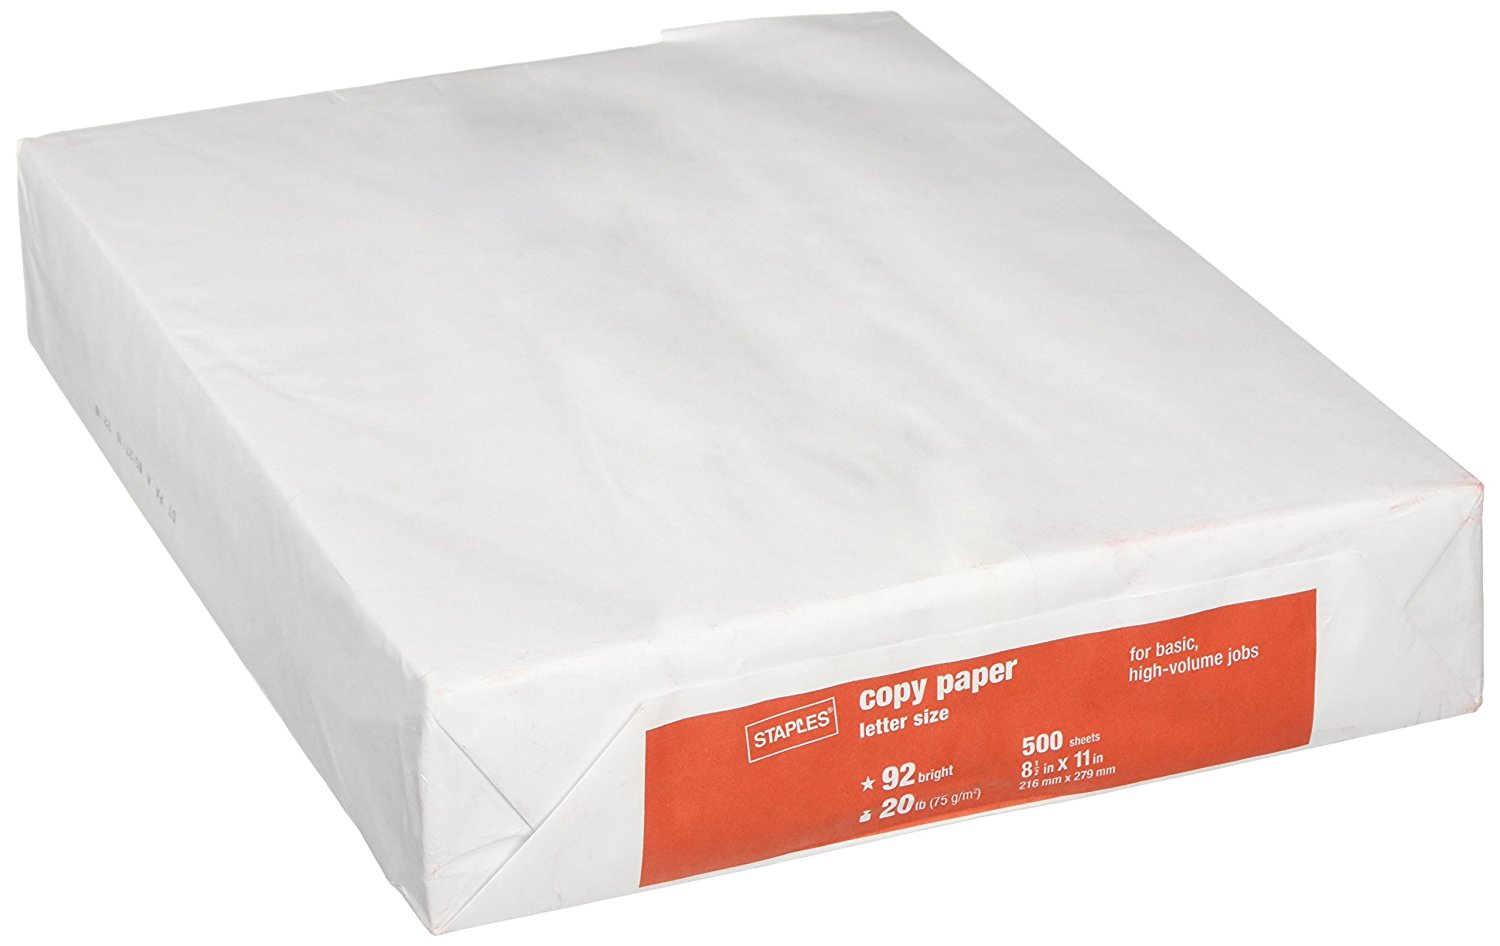 1 Ream - 500 Sheets Staples Poly Wrapped, White Multipurpose/Copy/Laser/Printer Paper, 20lb, 92 Bright